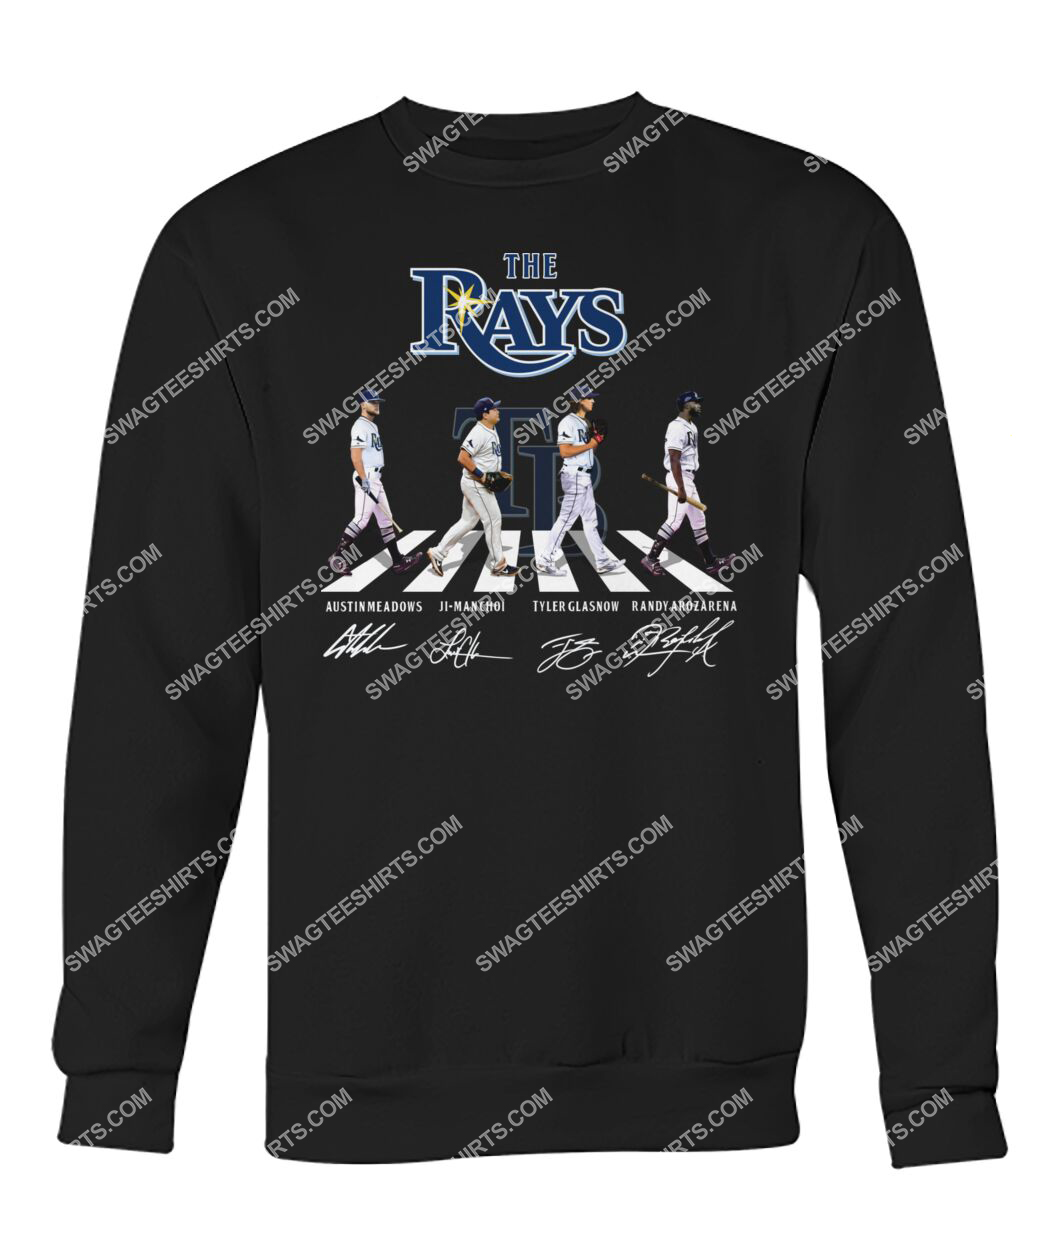 abbey road the tampa bay rays signatures sweatshirt 1